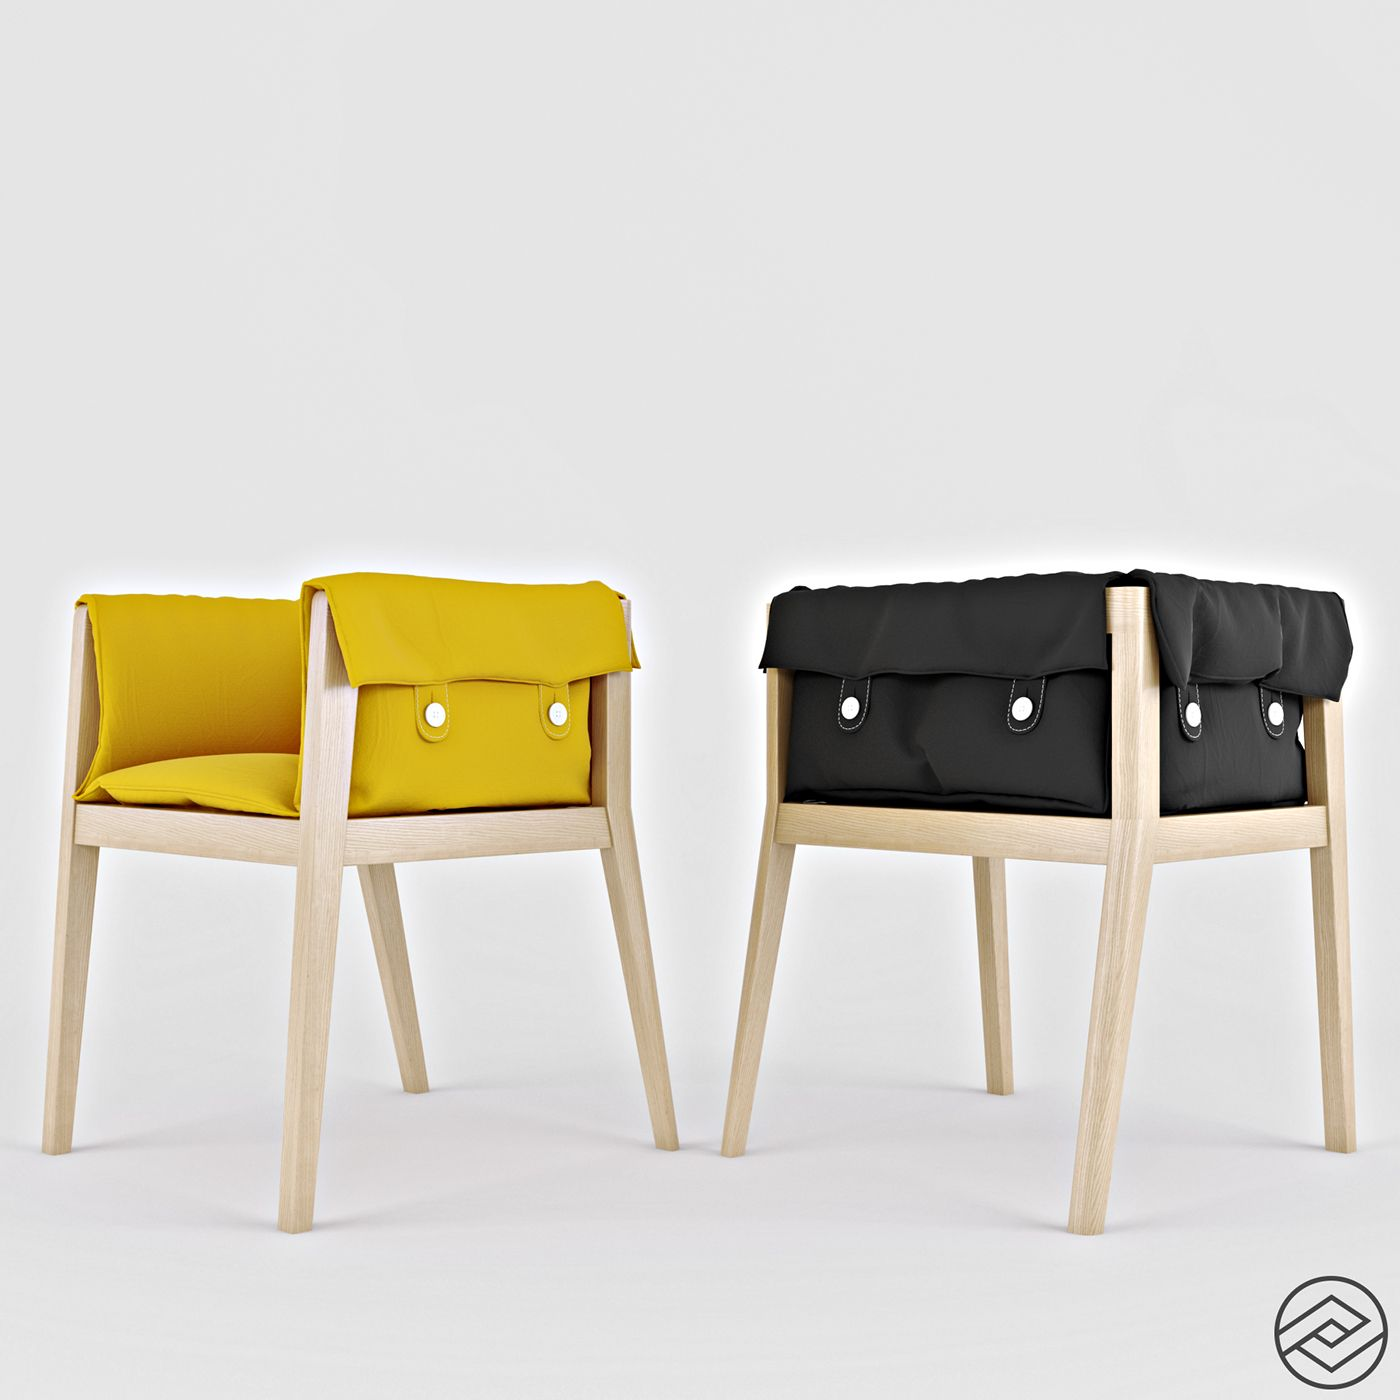 Meuble Intelligent In Dress On Behance New Classics Furniture Design